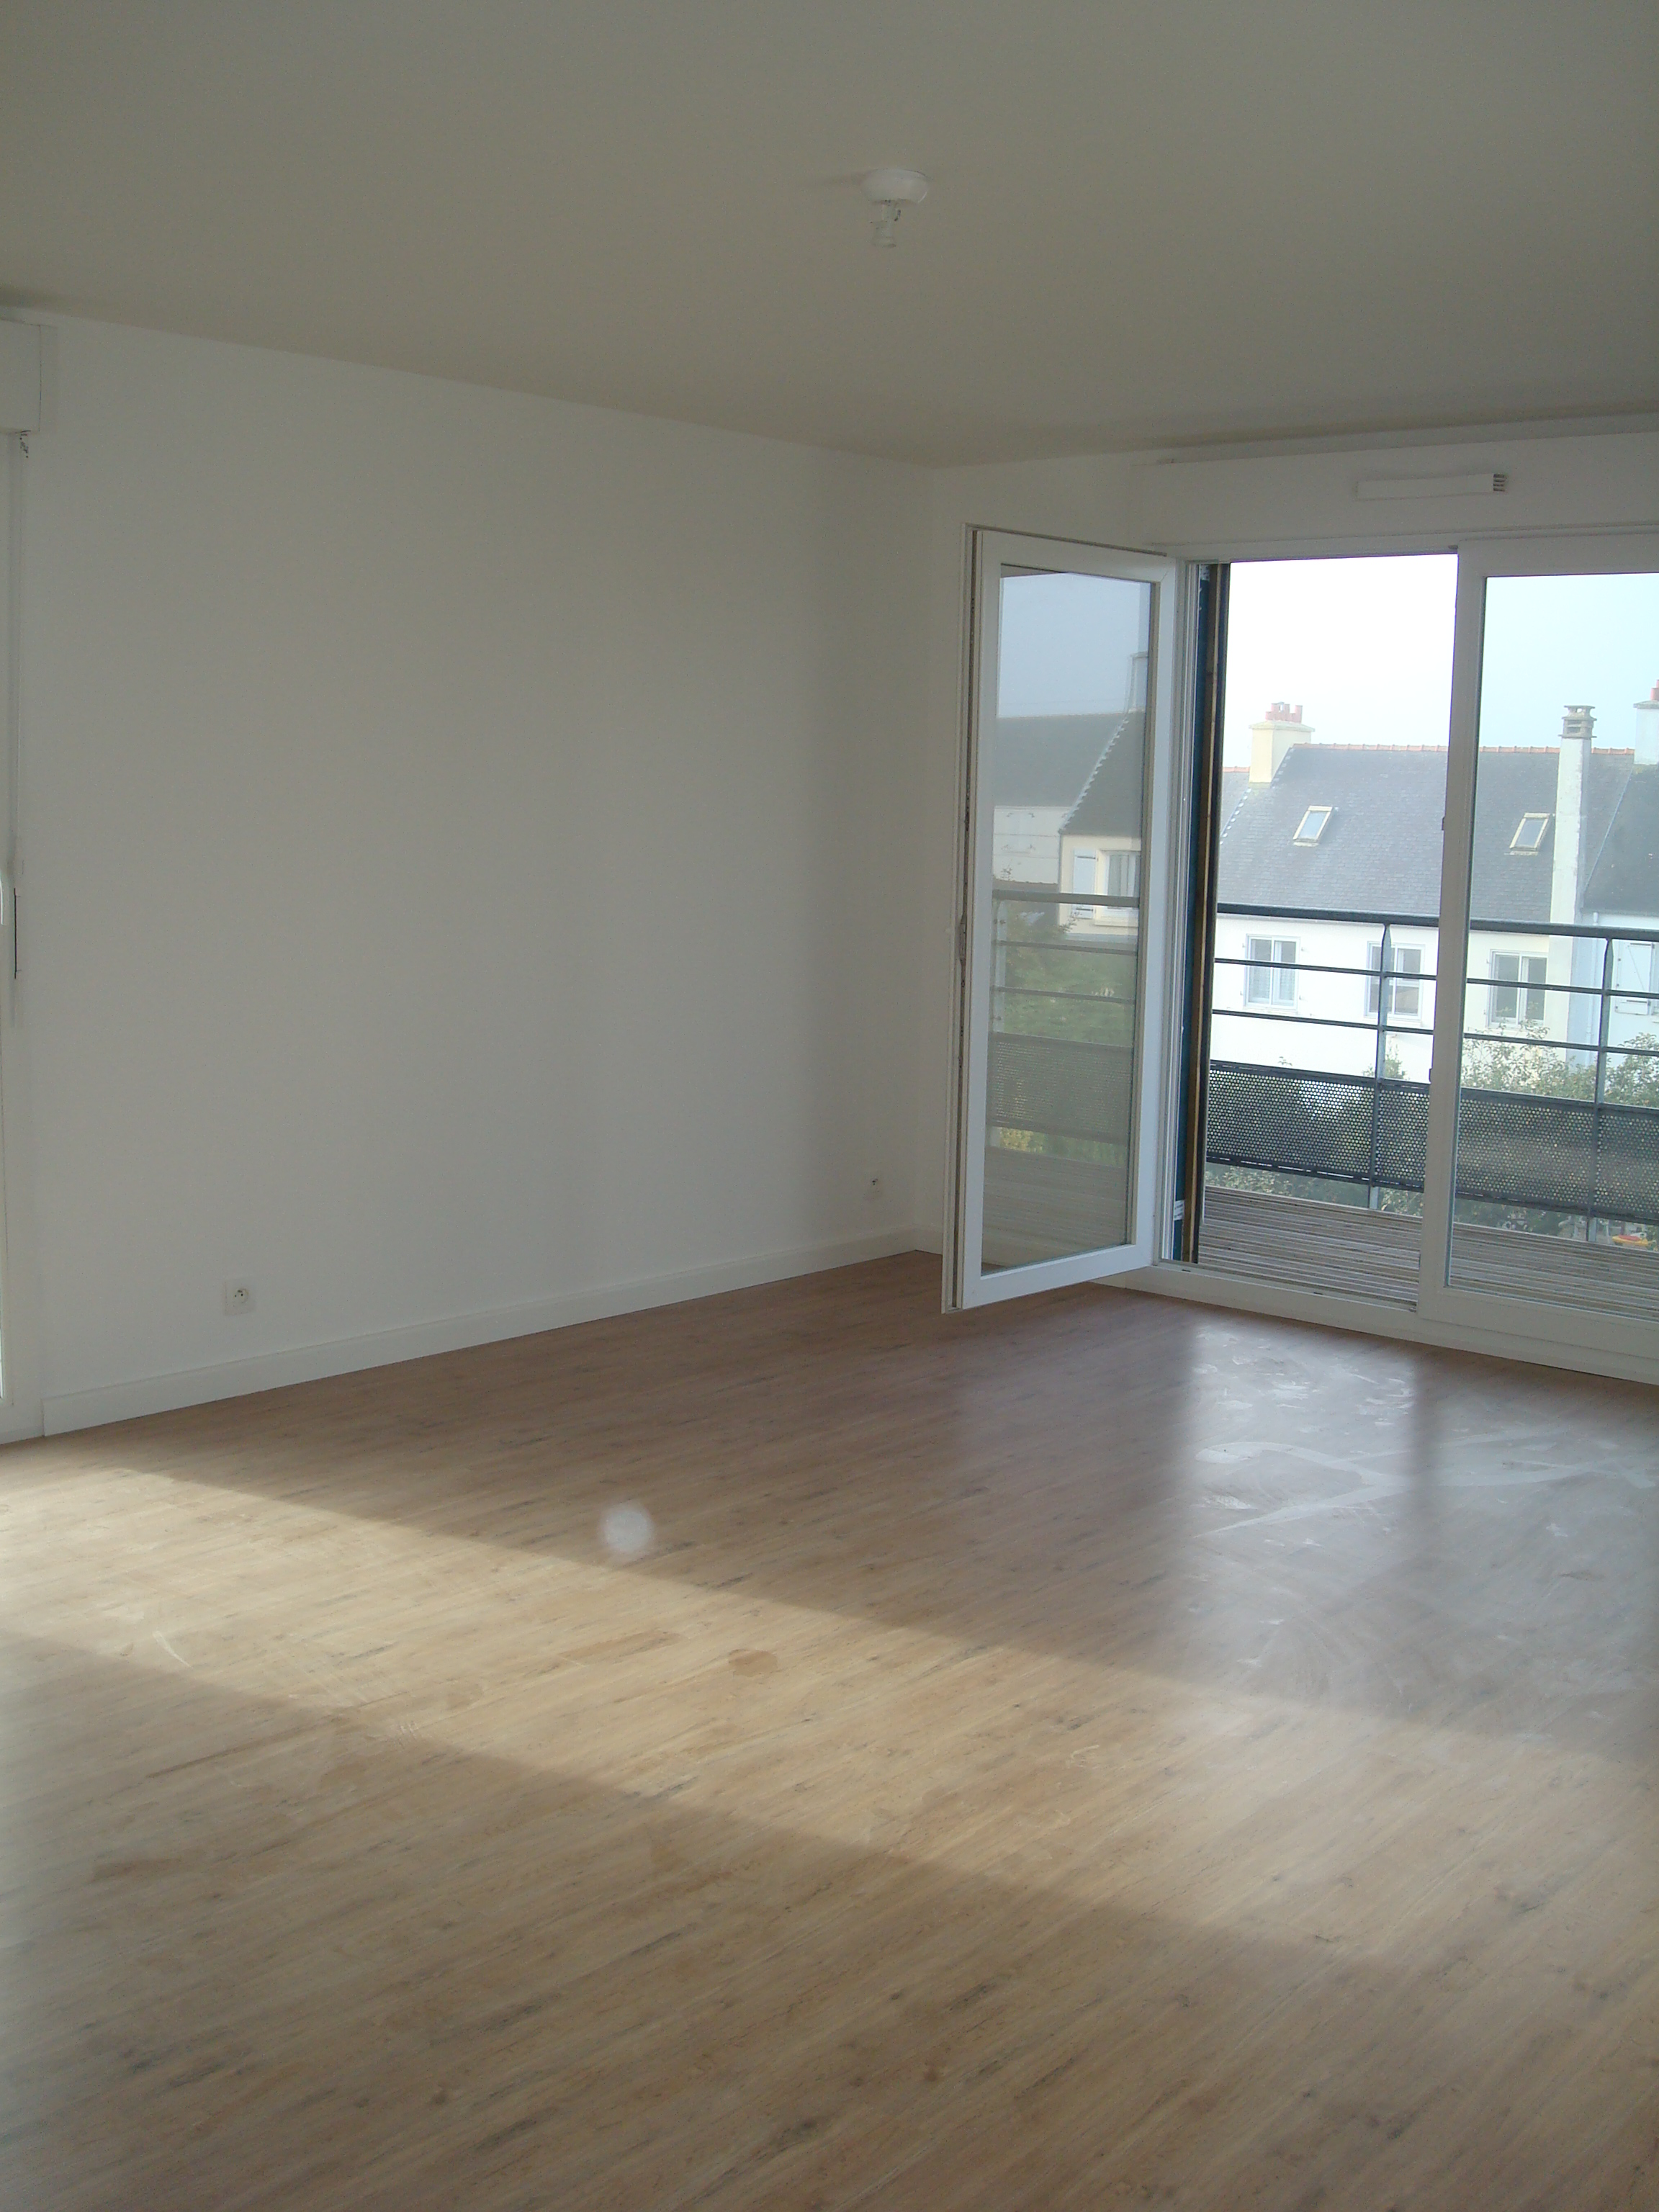 Appartement t3 neuf brest rive gauche 131 875 for Appartement t3 neuf